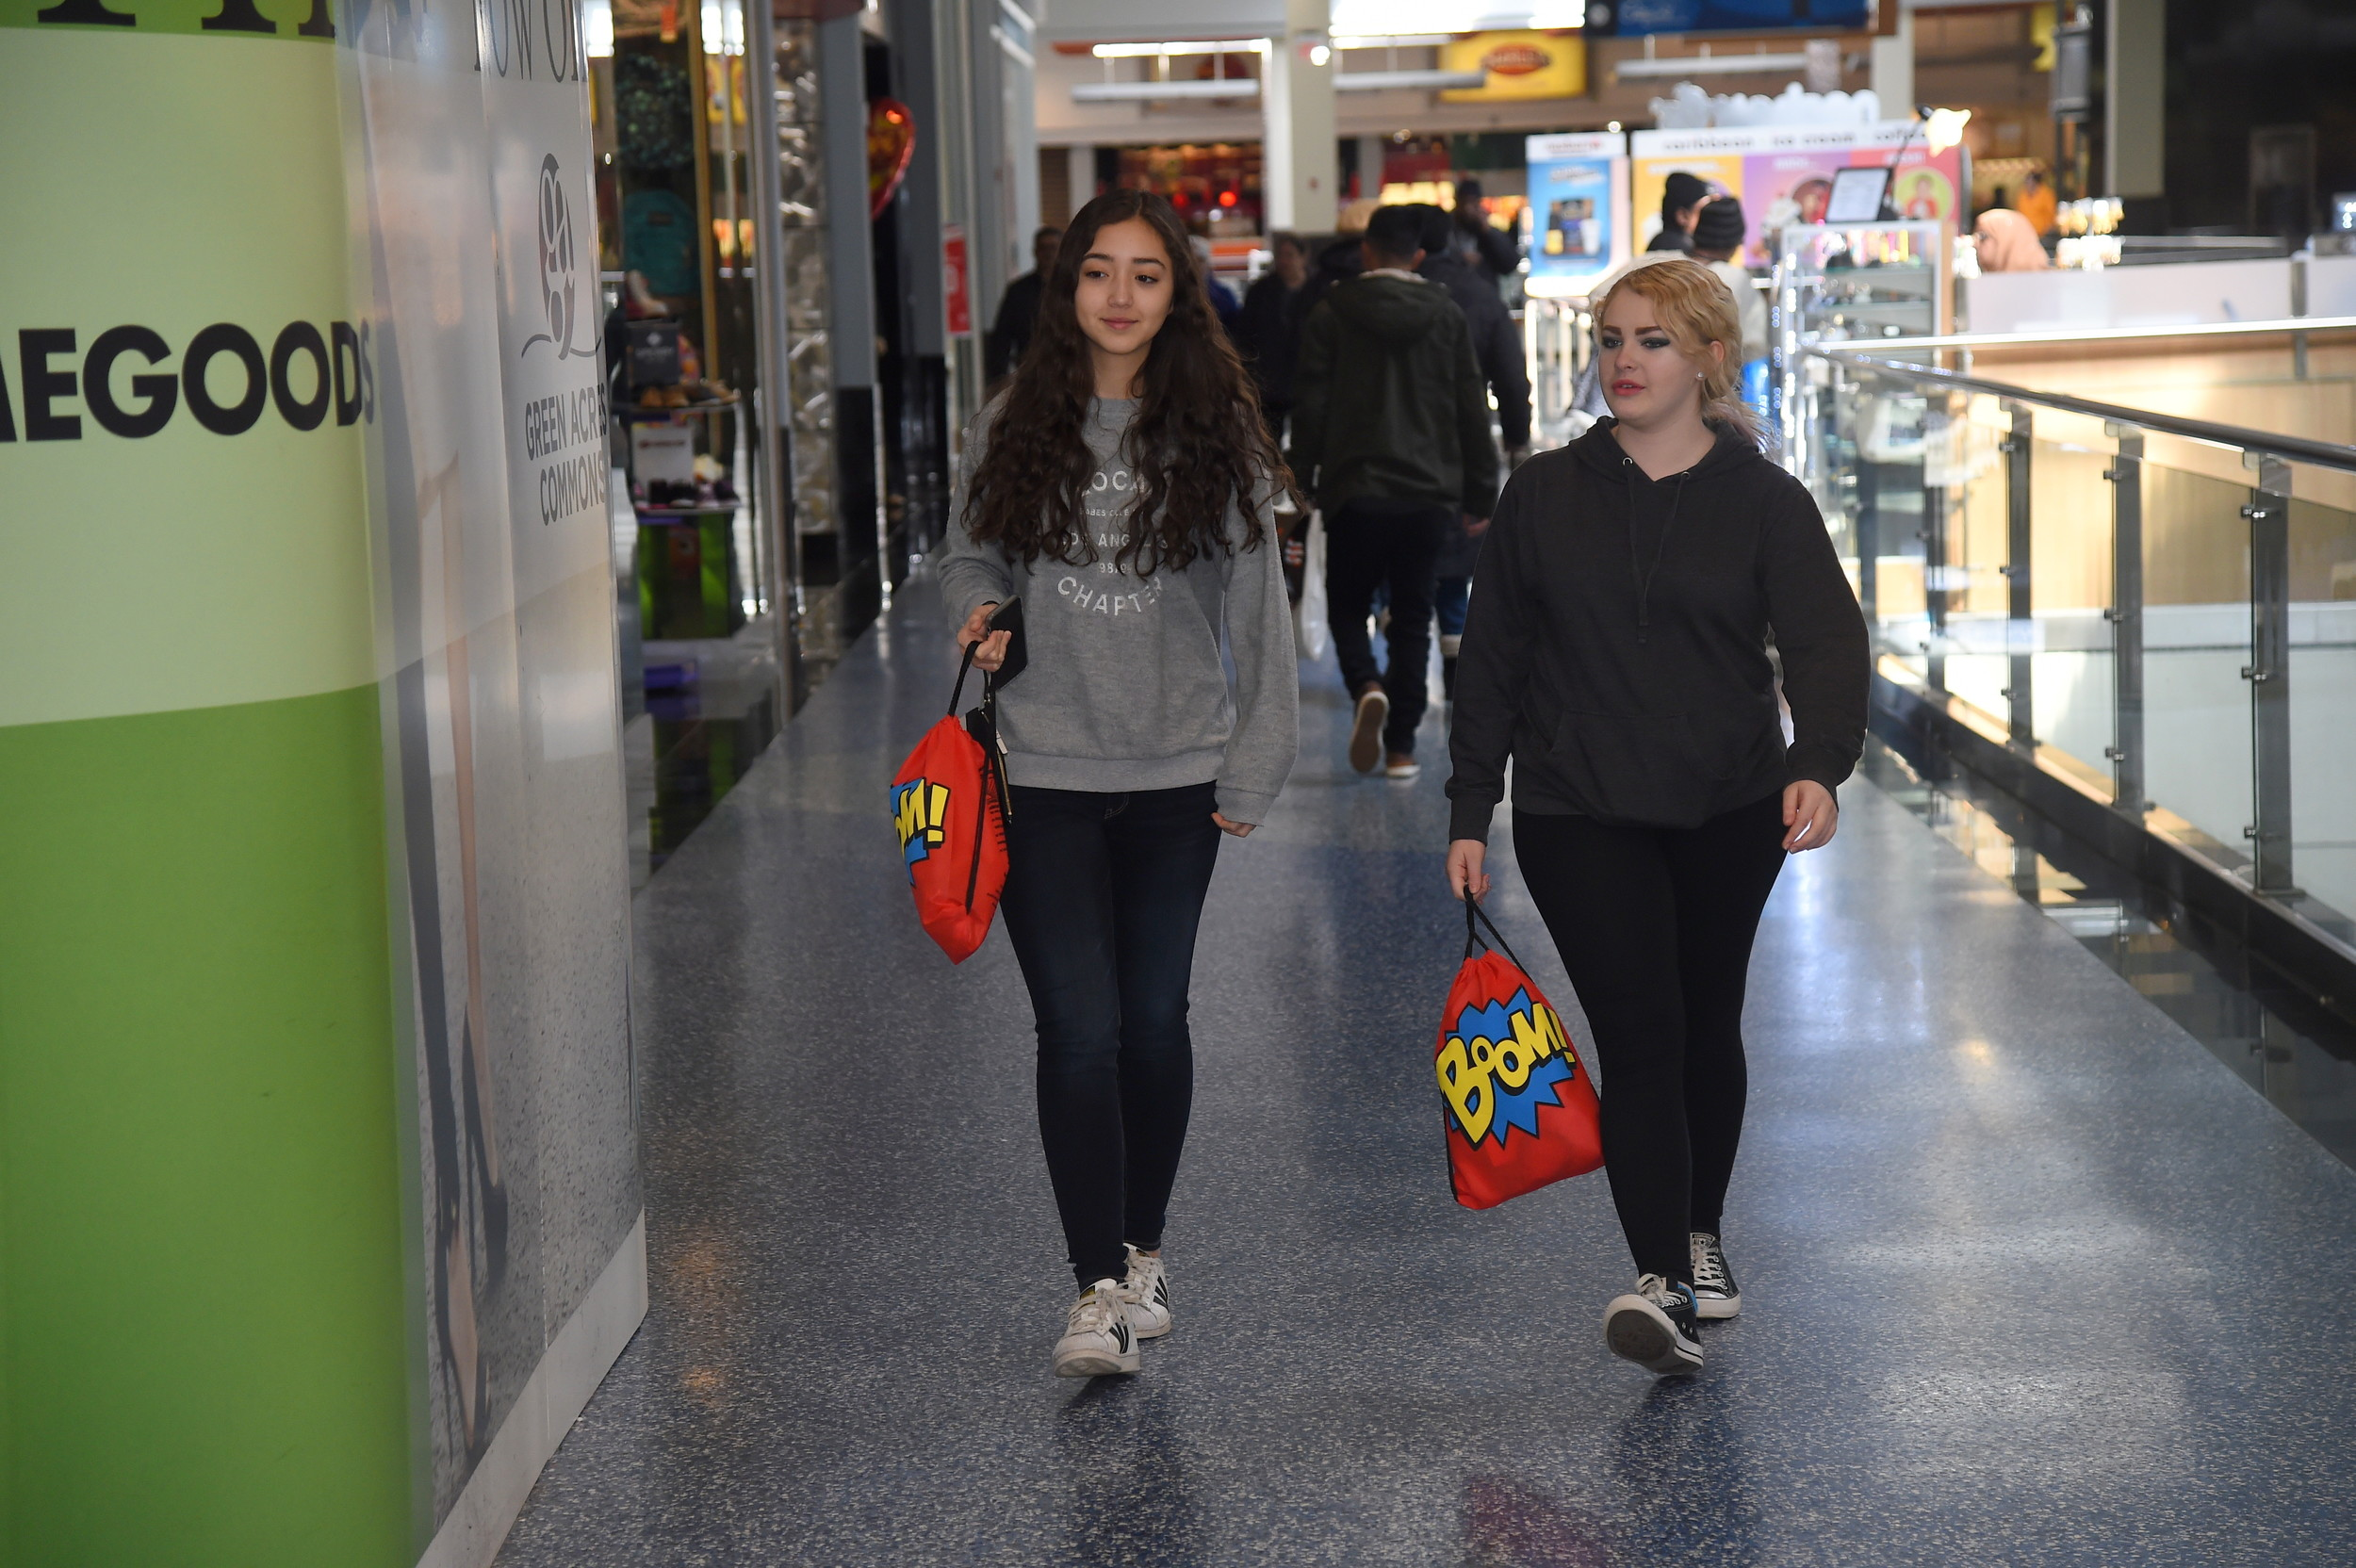 Maria Russotti,14, left, and Serena Riera, 15, of Lynbrook High School, walked through the mall.